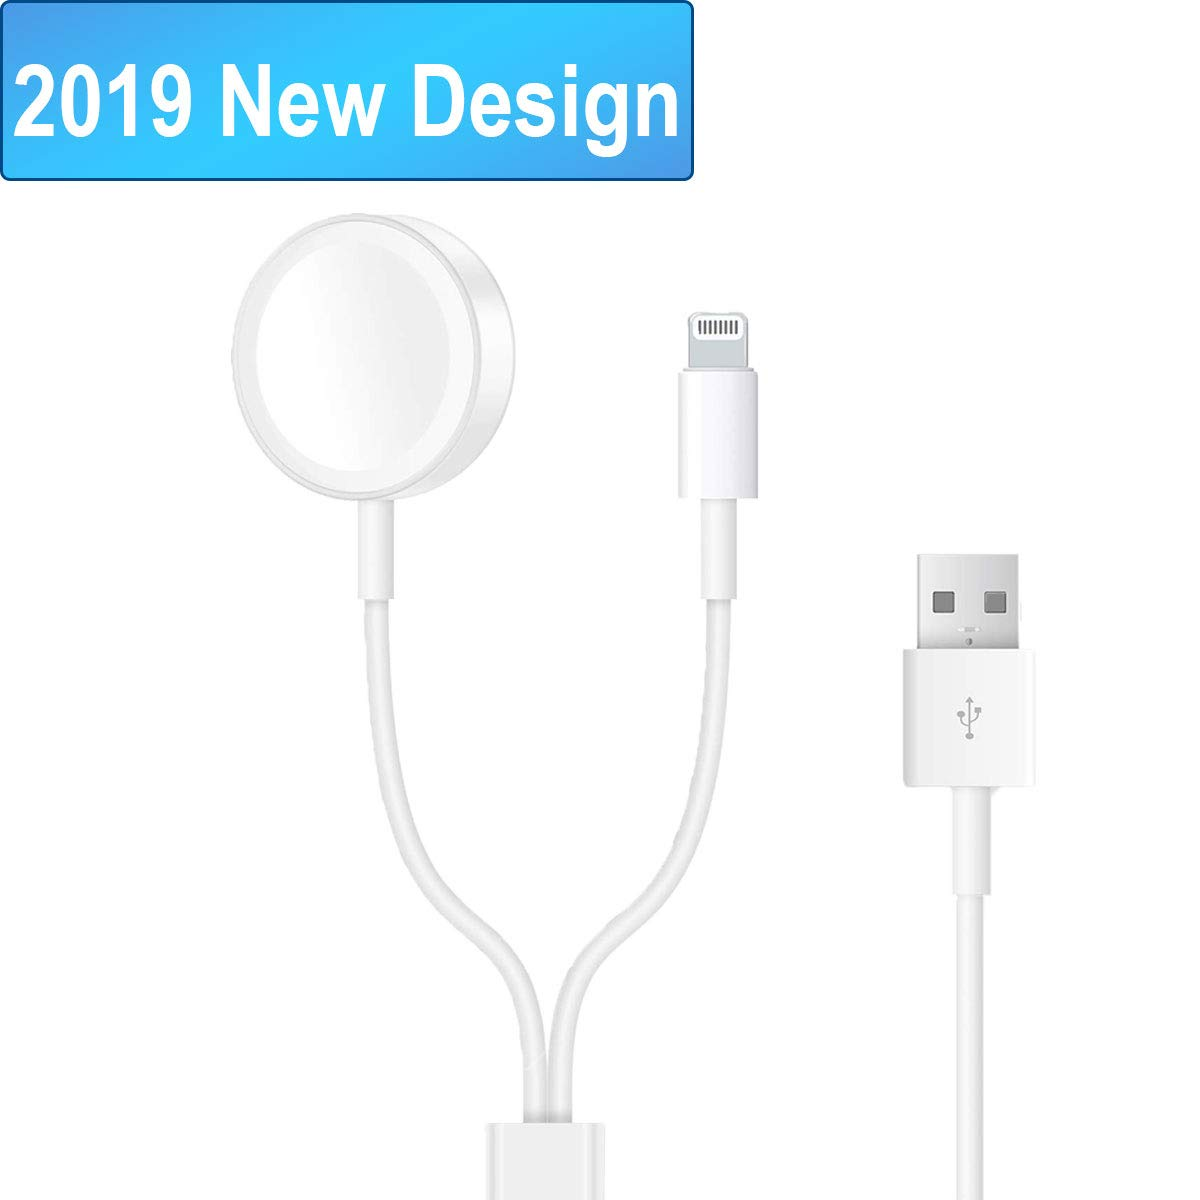 Joselinen Compatible with Apple Watch Charger 2 in 1 Pad Charging Cable Compatible with Apple Watch iwatch Series 1/2/3/4/iPhoneXR/XS/XS Max/X/8/8Plus/7/7Plus/6/6Plus